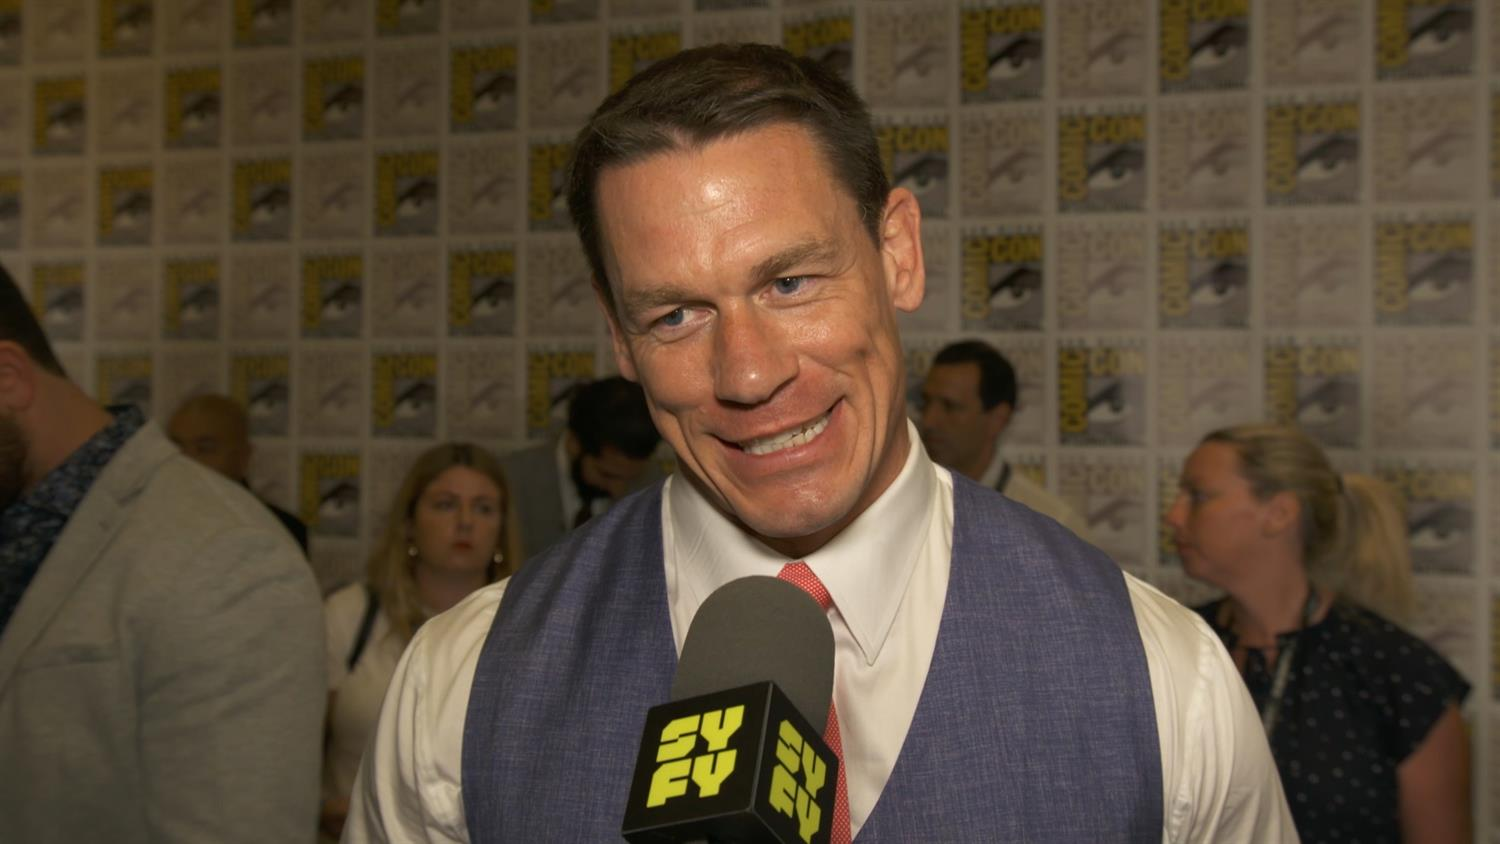 John Cena on Why He Chose Bumblebee | SYFY WIRE